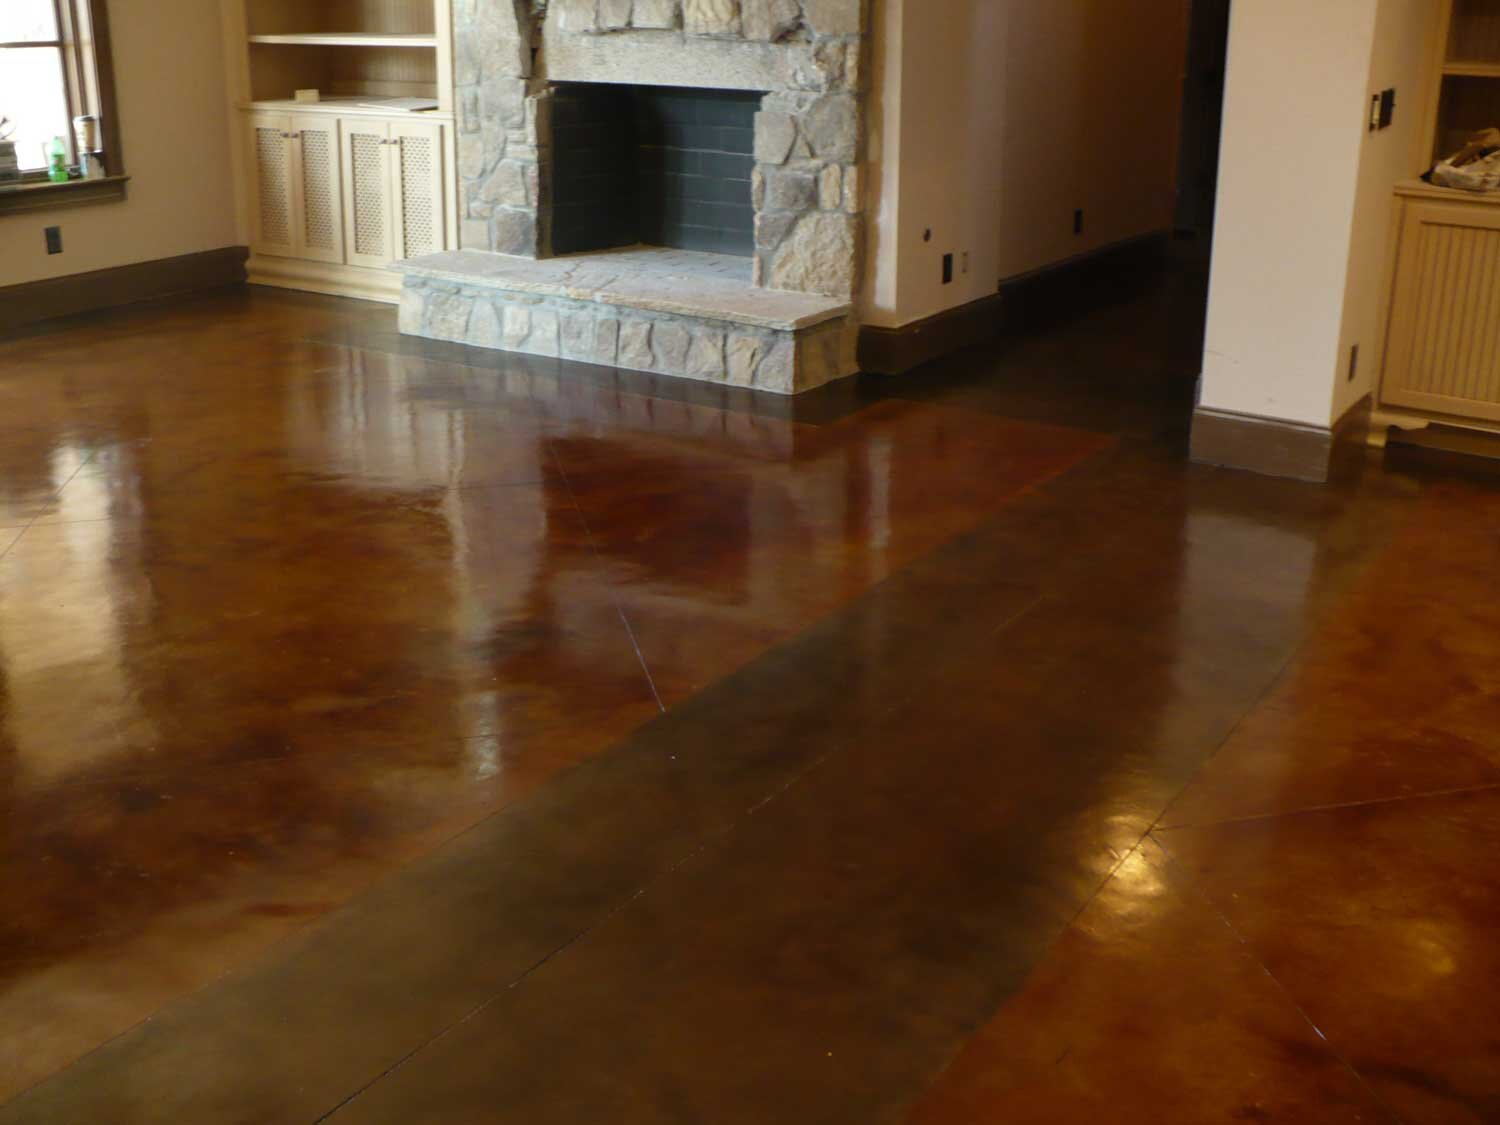 Mission Brown and Walnut Blush-Tone acid stain.